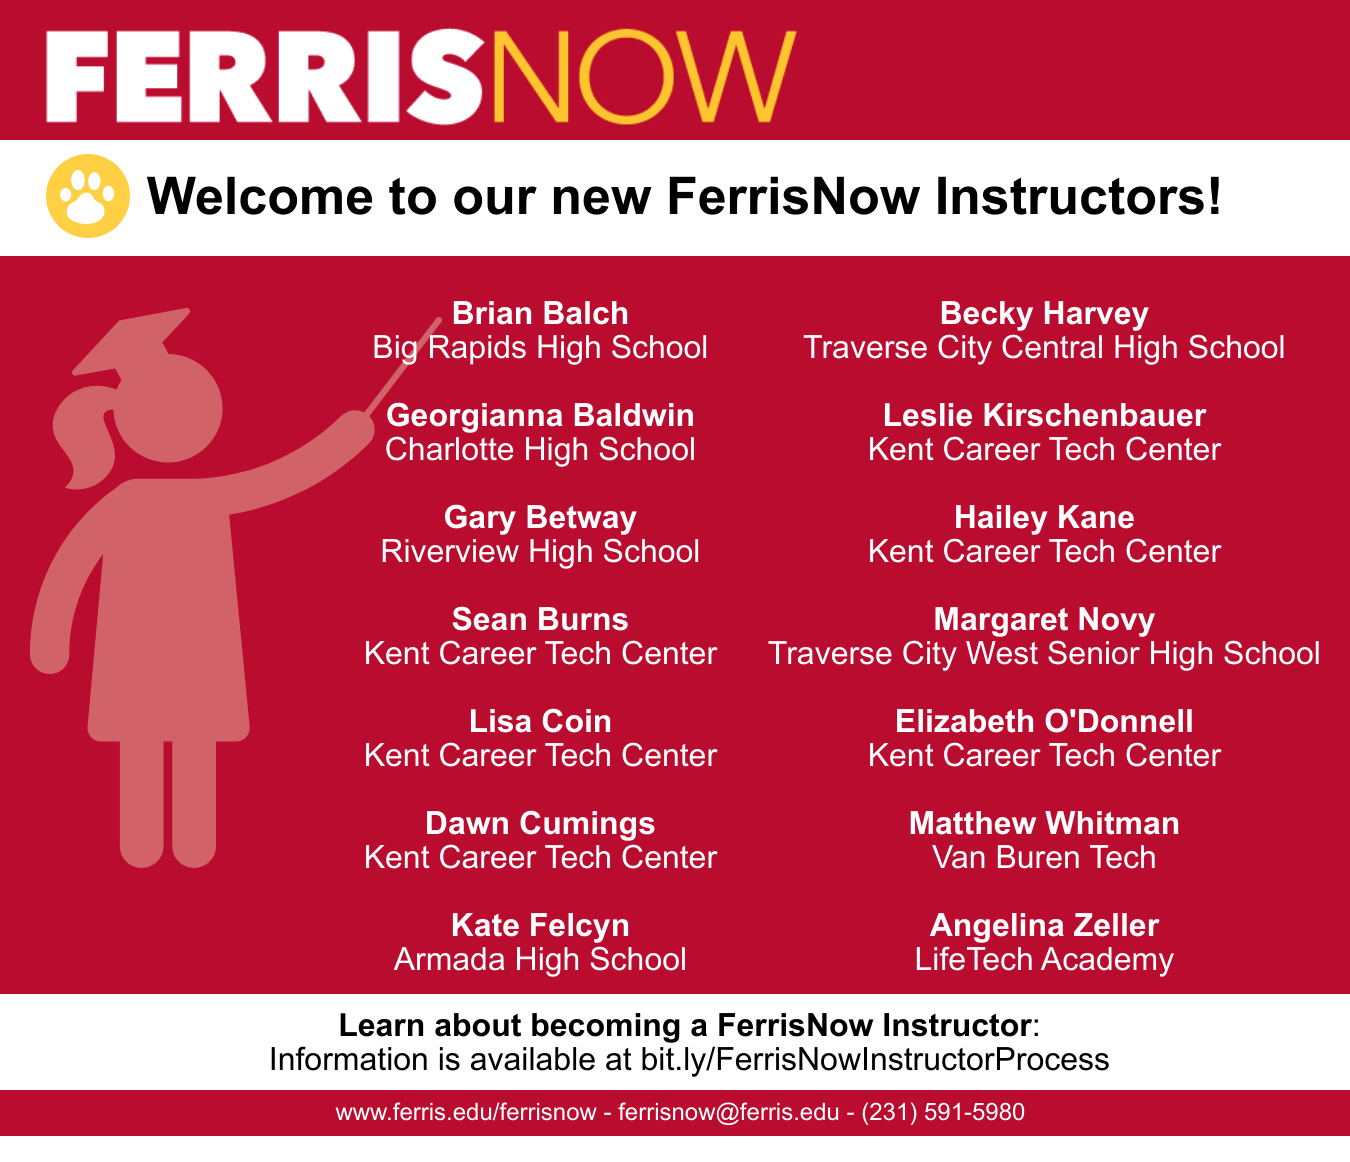 FerrisNow welcomes 13 new instructors